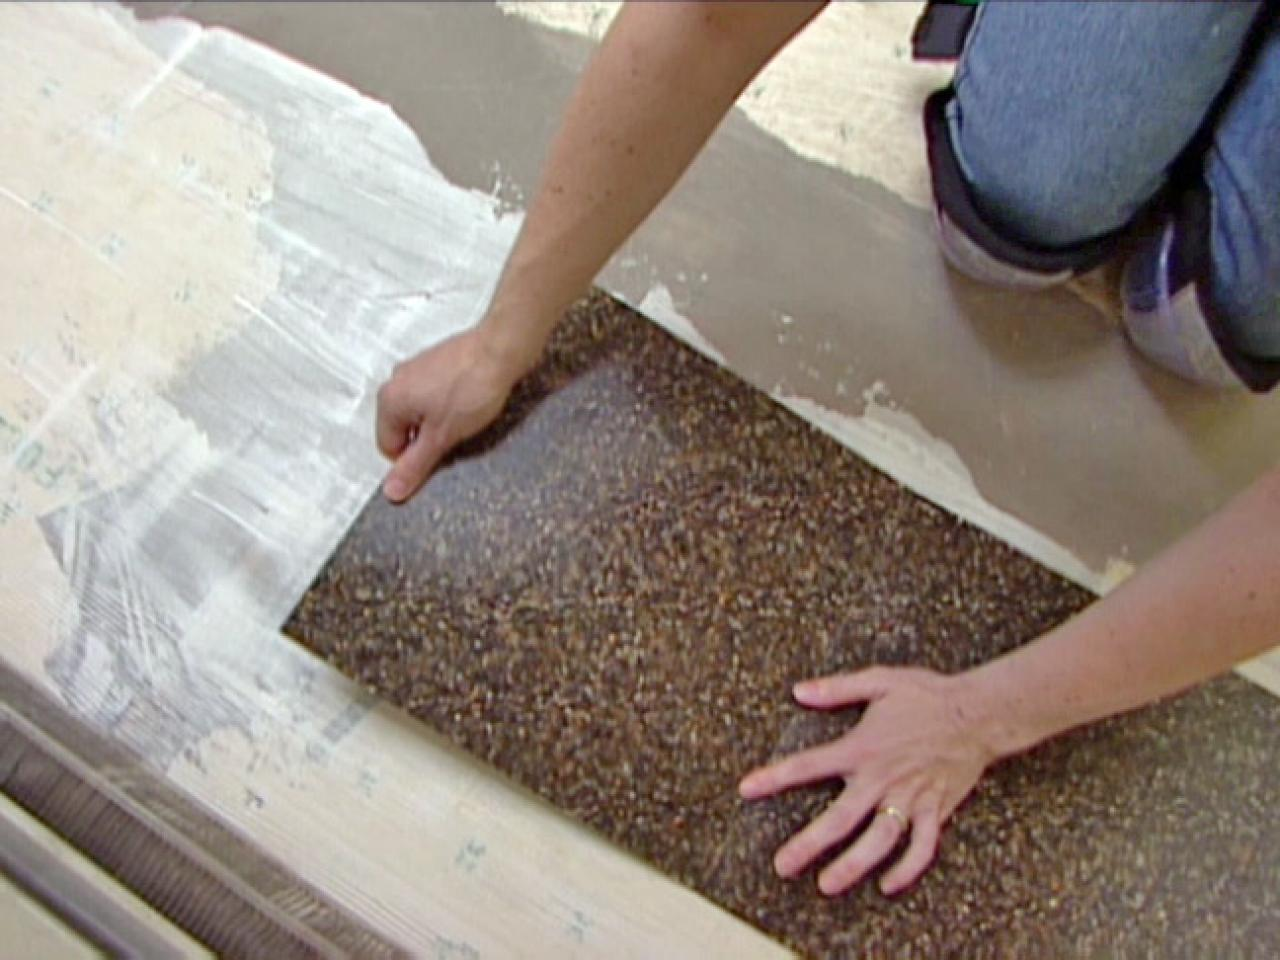 How to Lay Terrazzo Floor Tile | how-tos | DIY